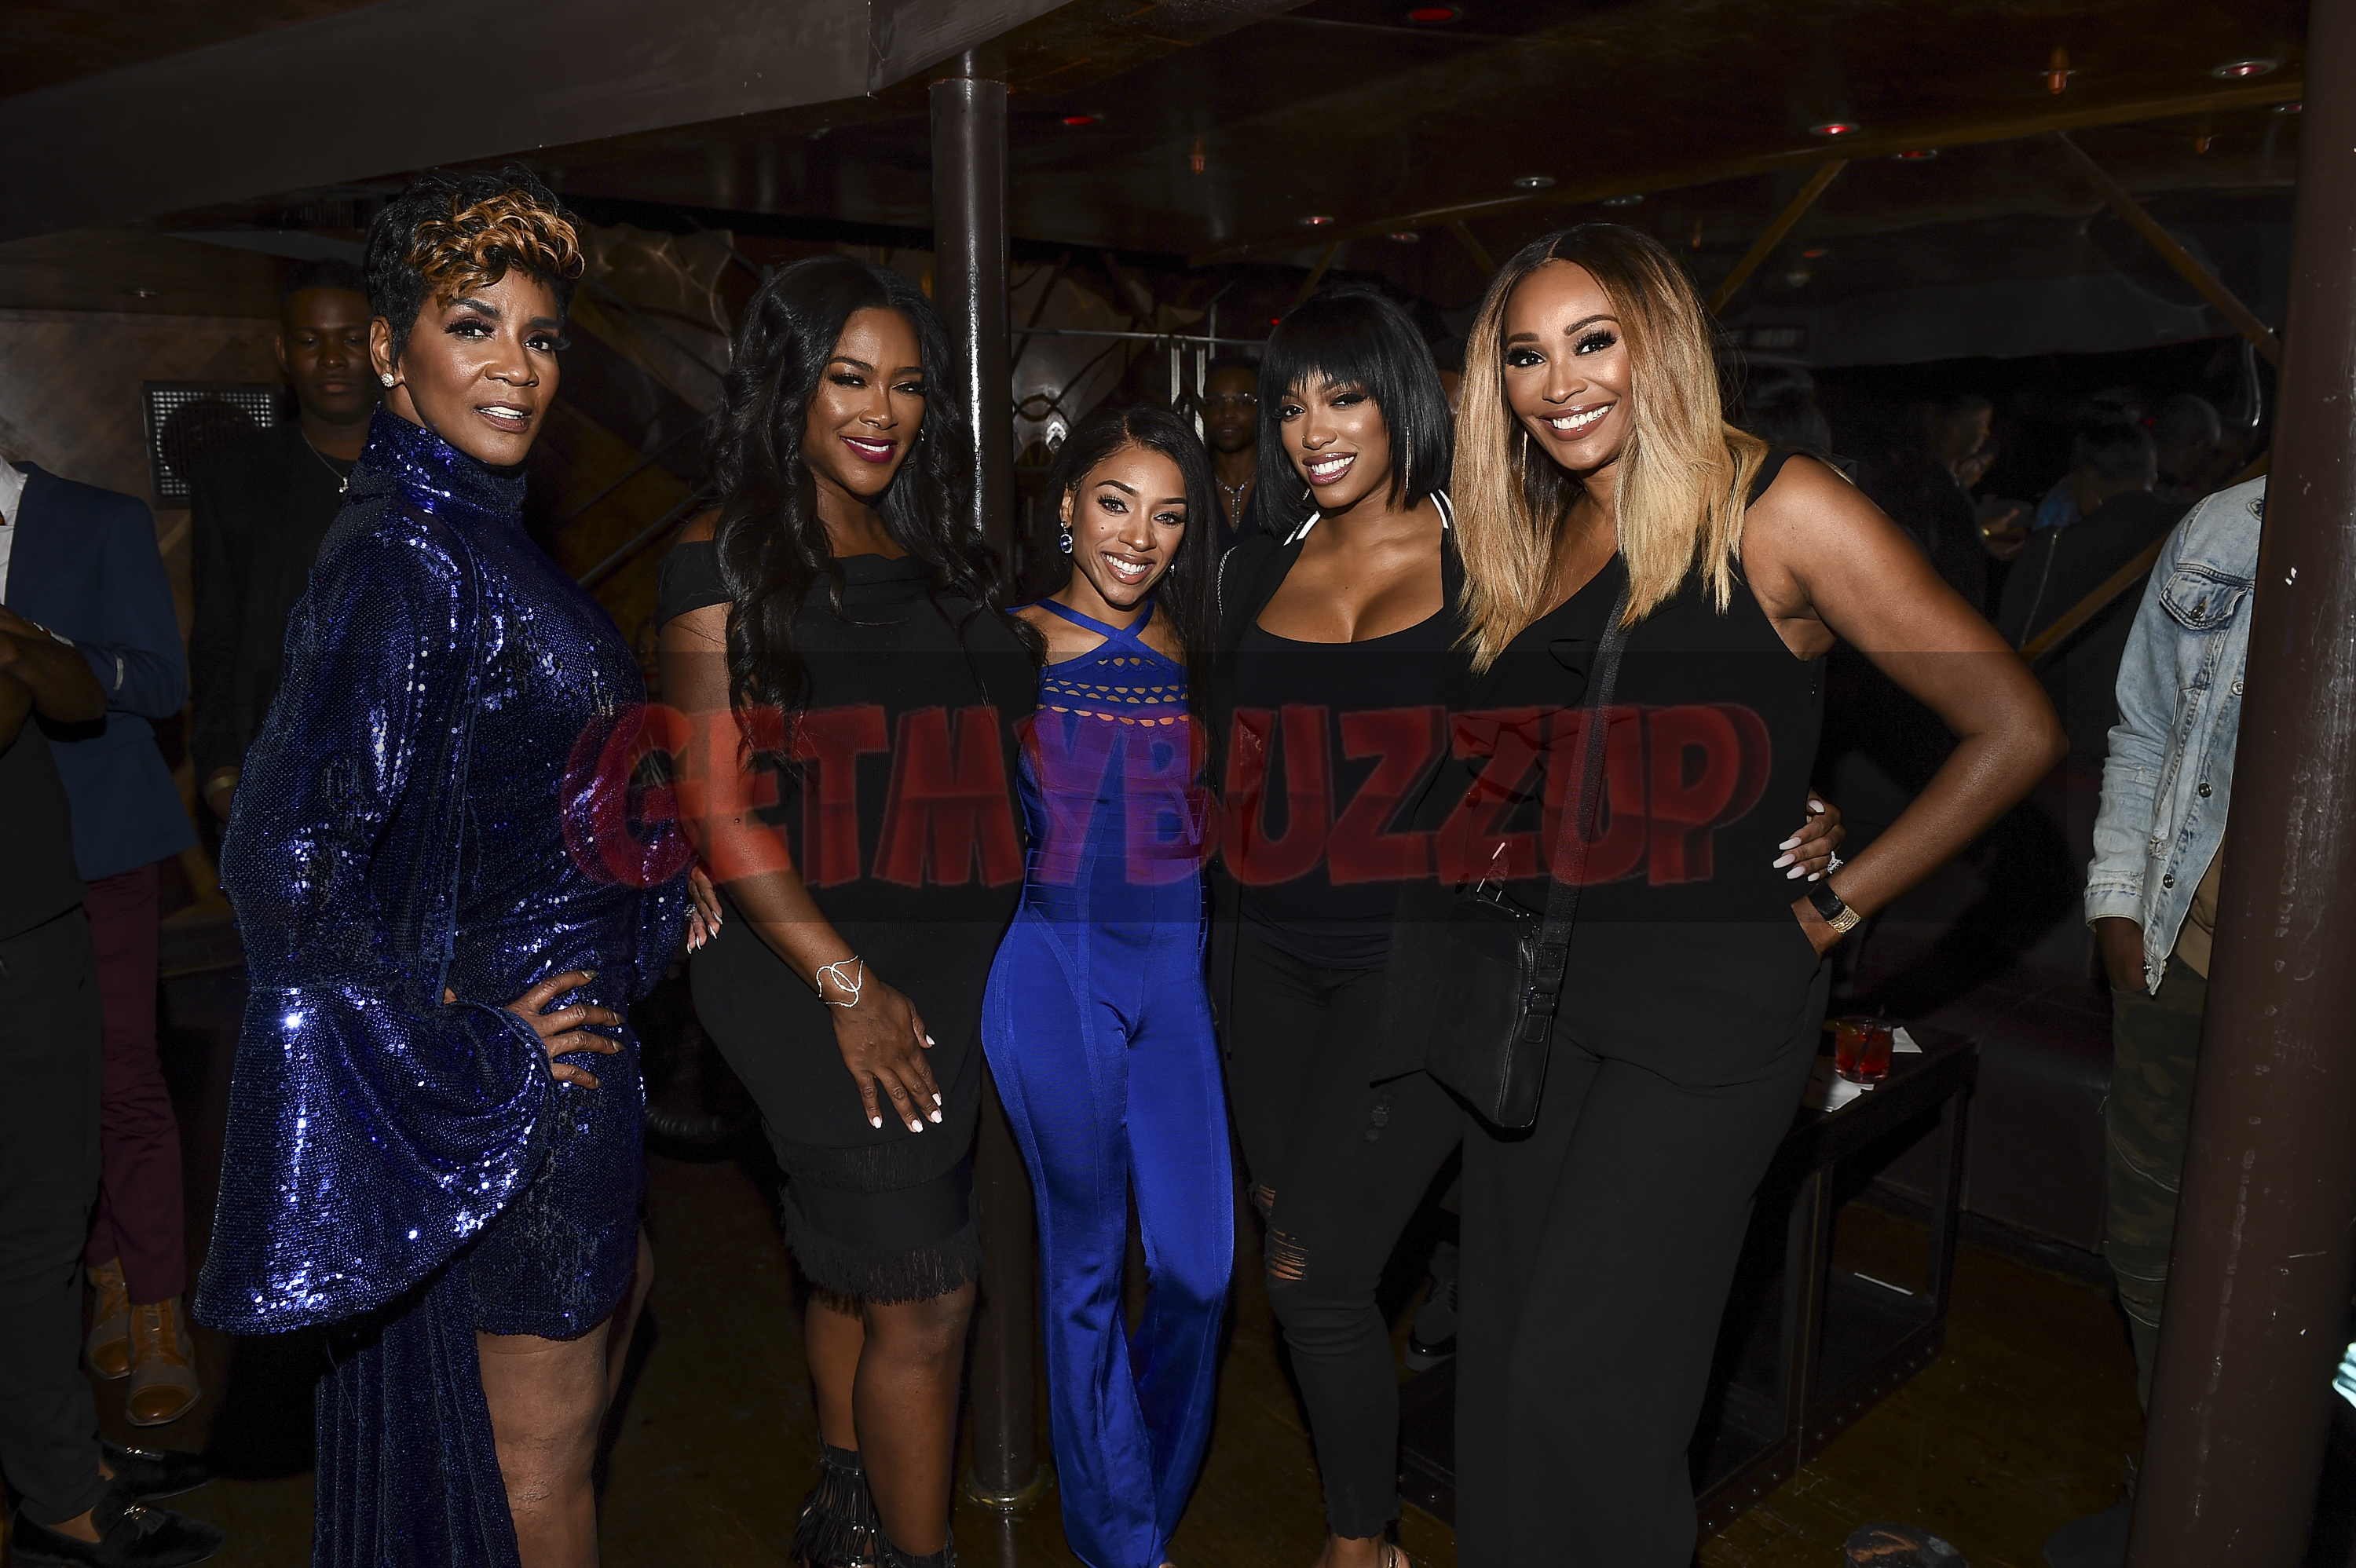 Wetv Hosts Party For Return Of Growing Up Hip Hop Atl Guhhatl Photos Hip Hop Atlanta Celebrity Photos Host A Party